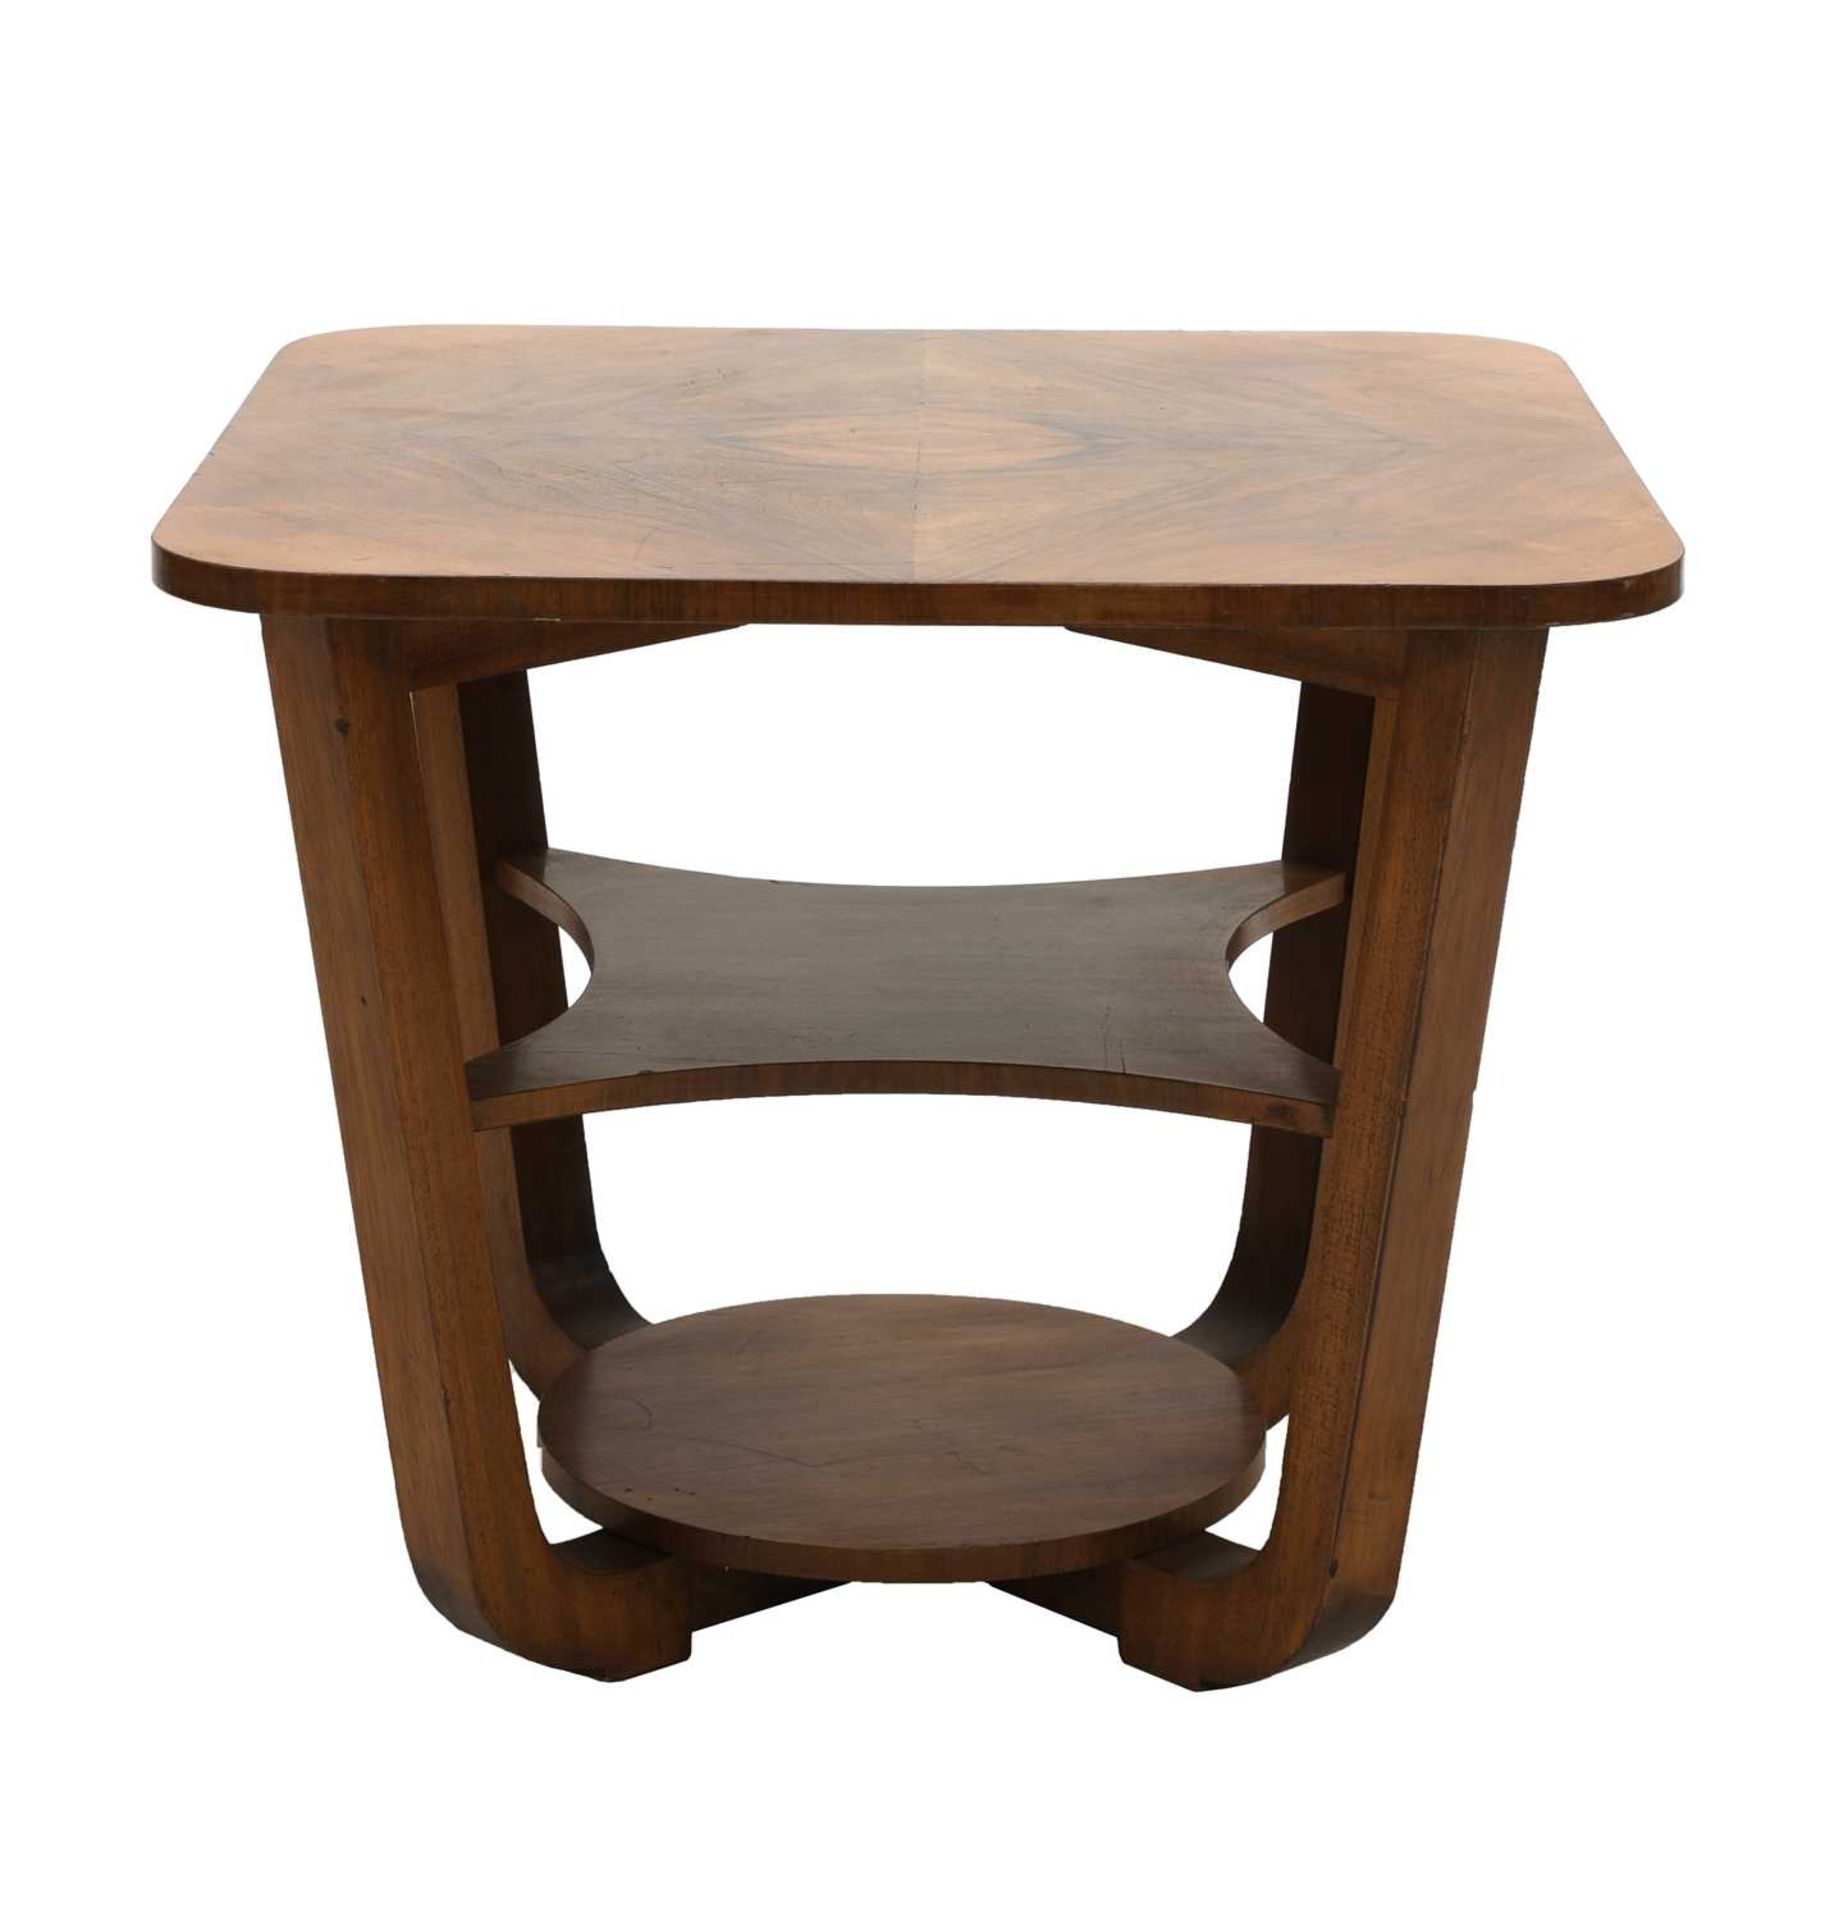 An Art Deco walnut table, - Image 2 of 3